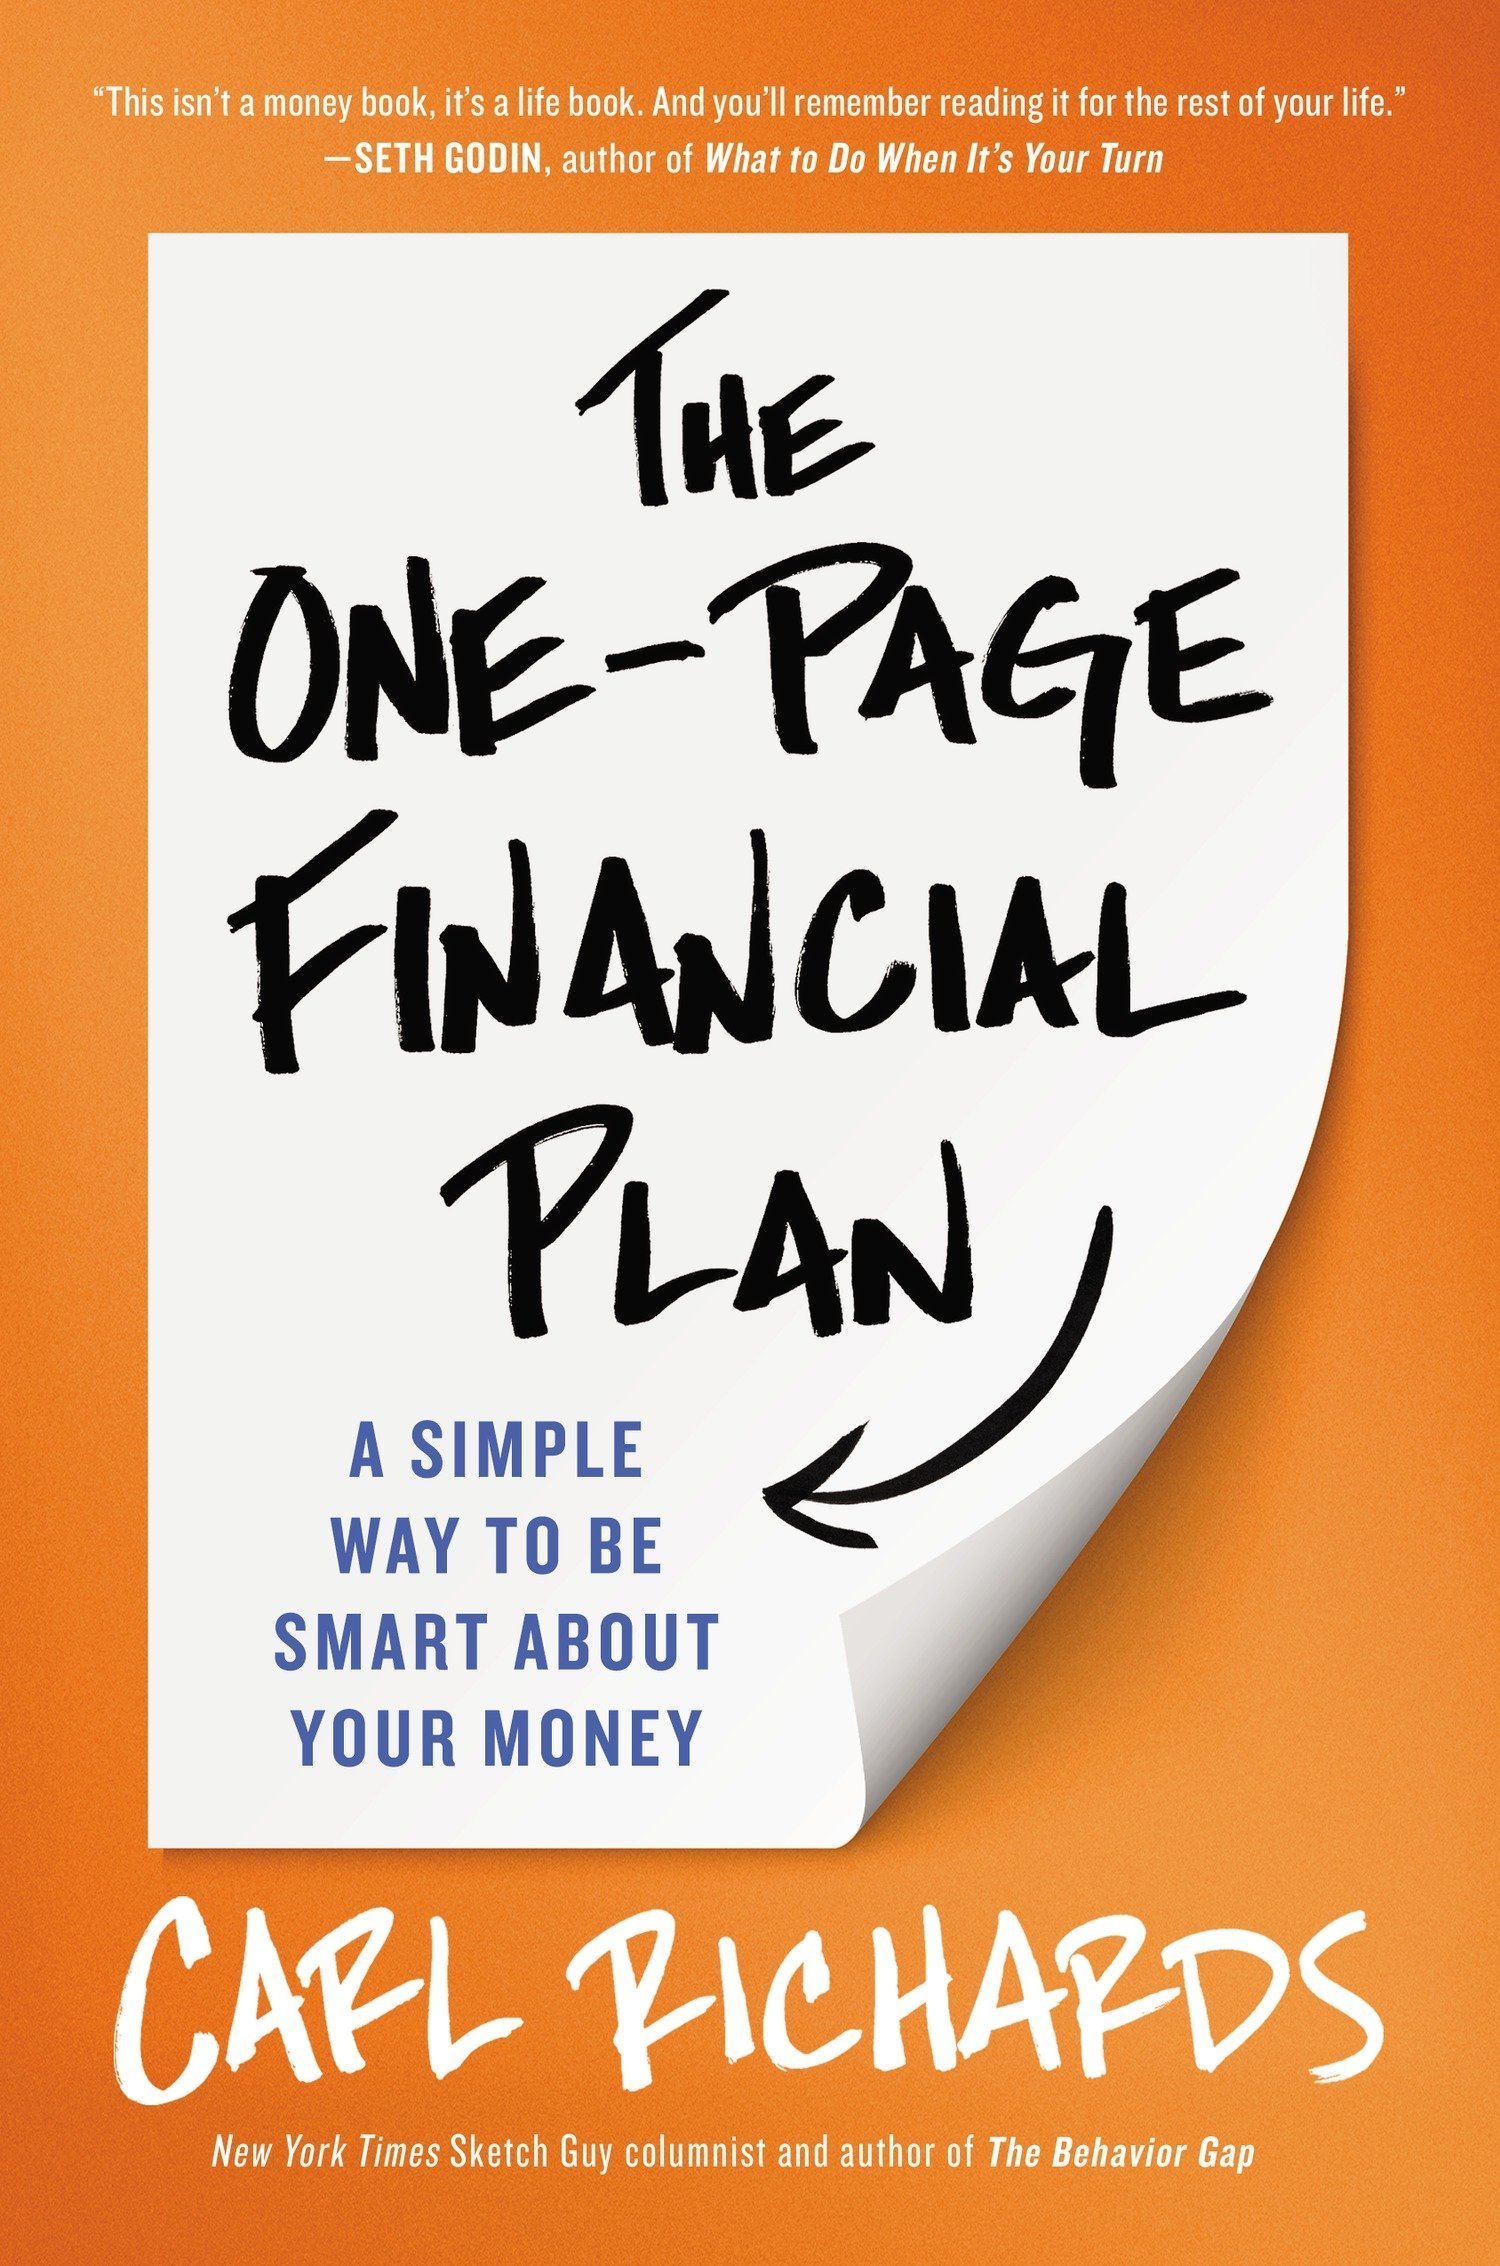 The One-Page Financial Plan: A Simple Way to Be Smart About Your Money:  Carl Richards: 9781591847557: Amazon.com: Books